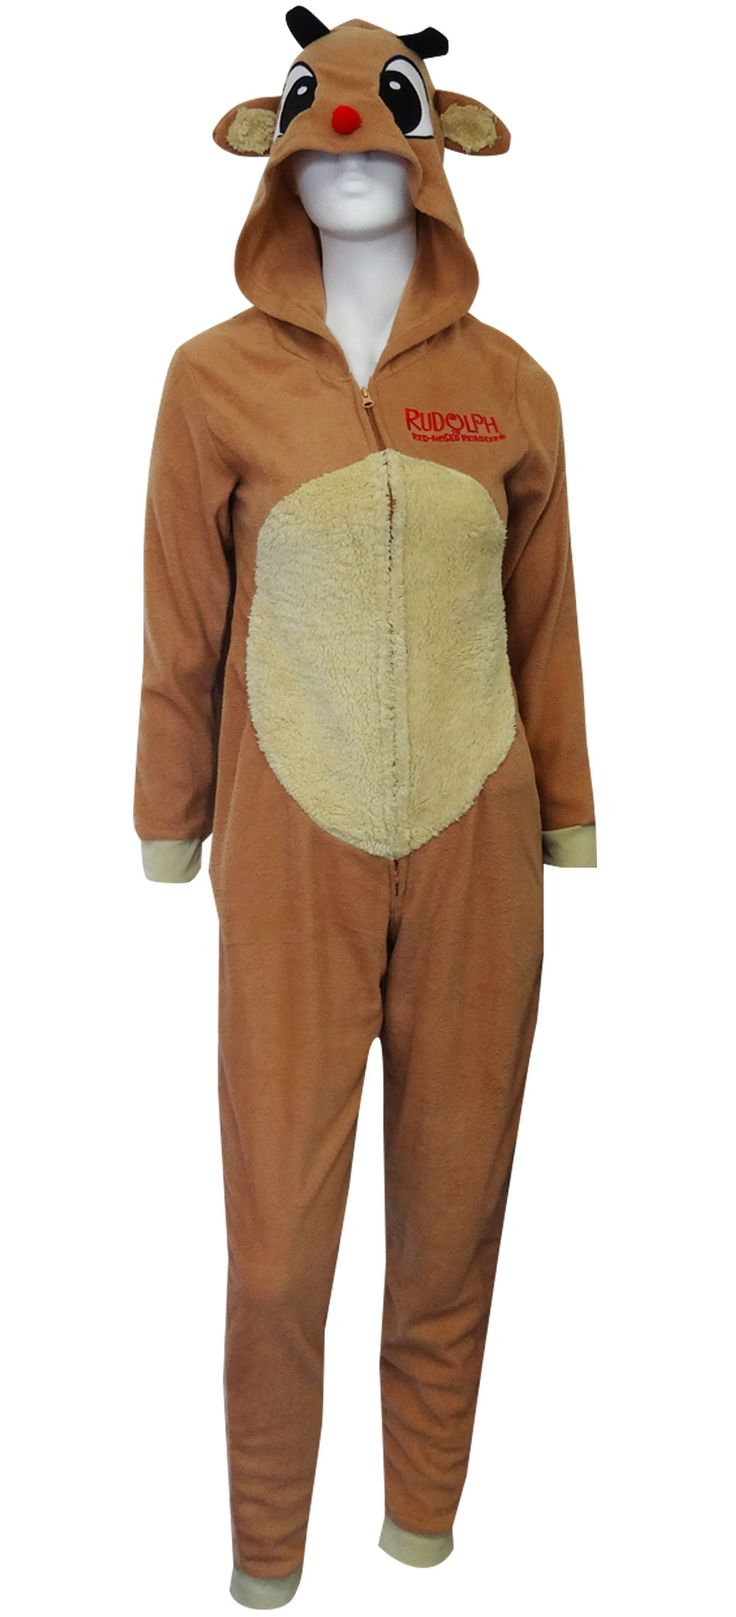 WebUndies.com Dress Like Rudolph The Red-Nosed Reindeer Onesie Pajama